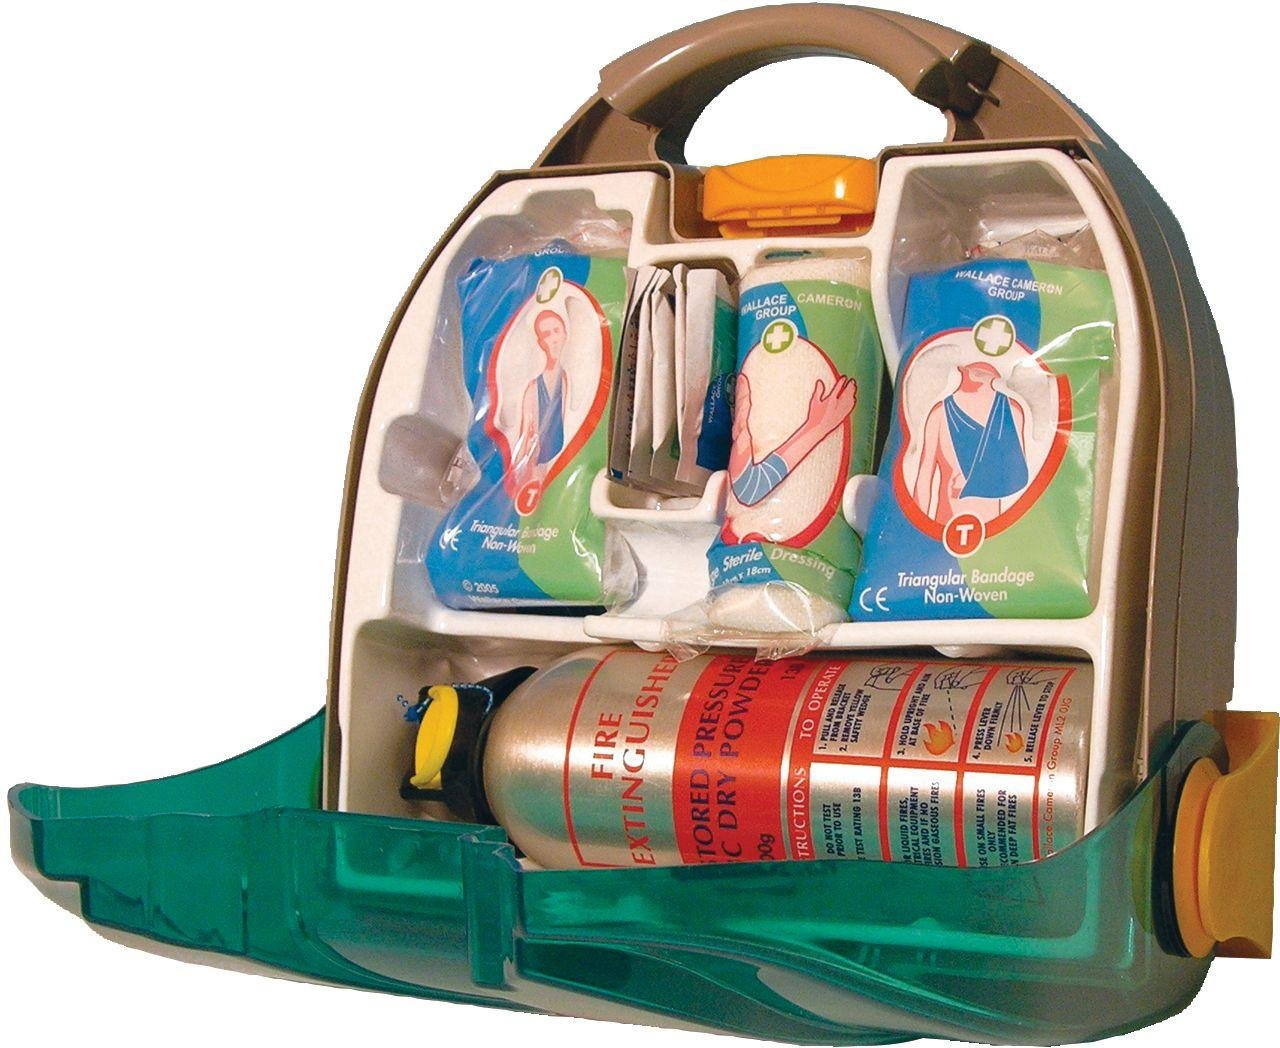 Image of Astroplast Bambino First Aid Kit with Fire Extinguisher.